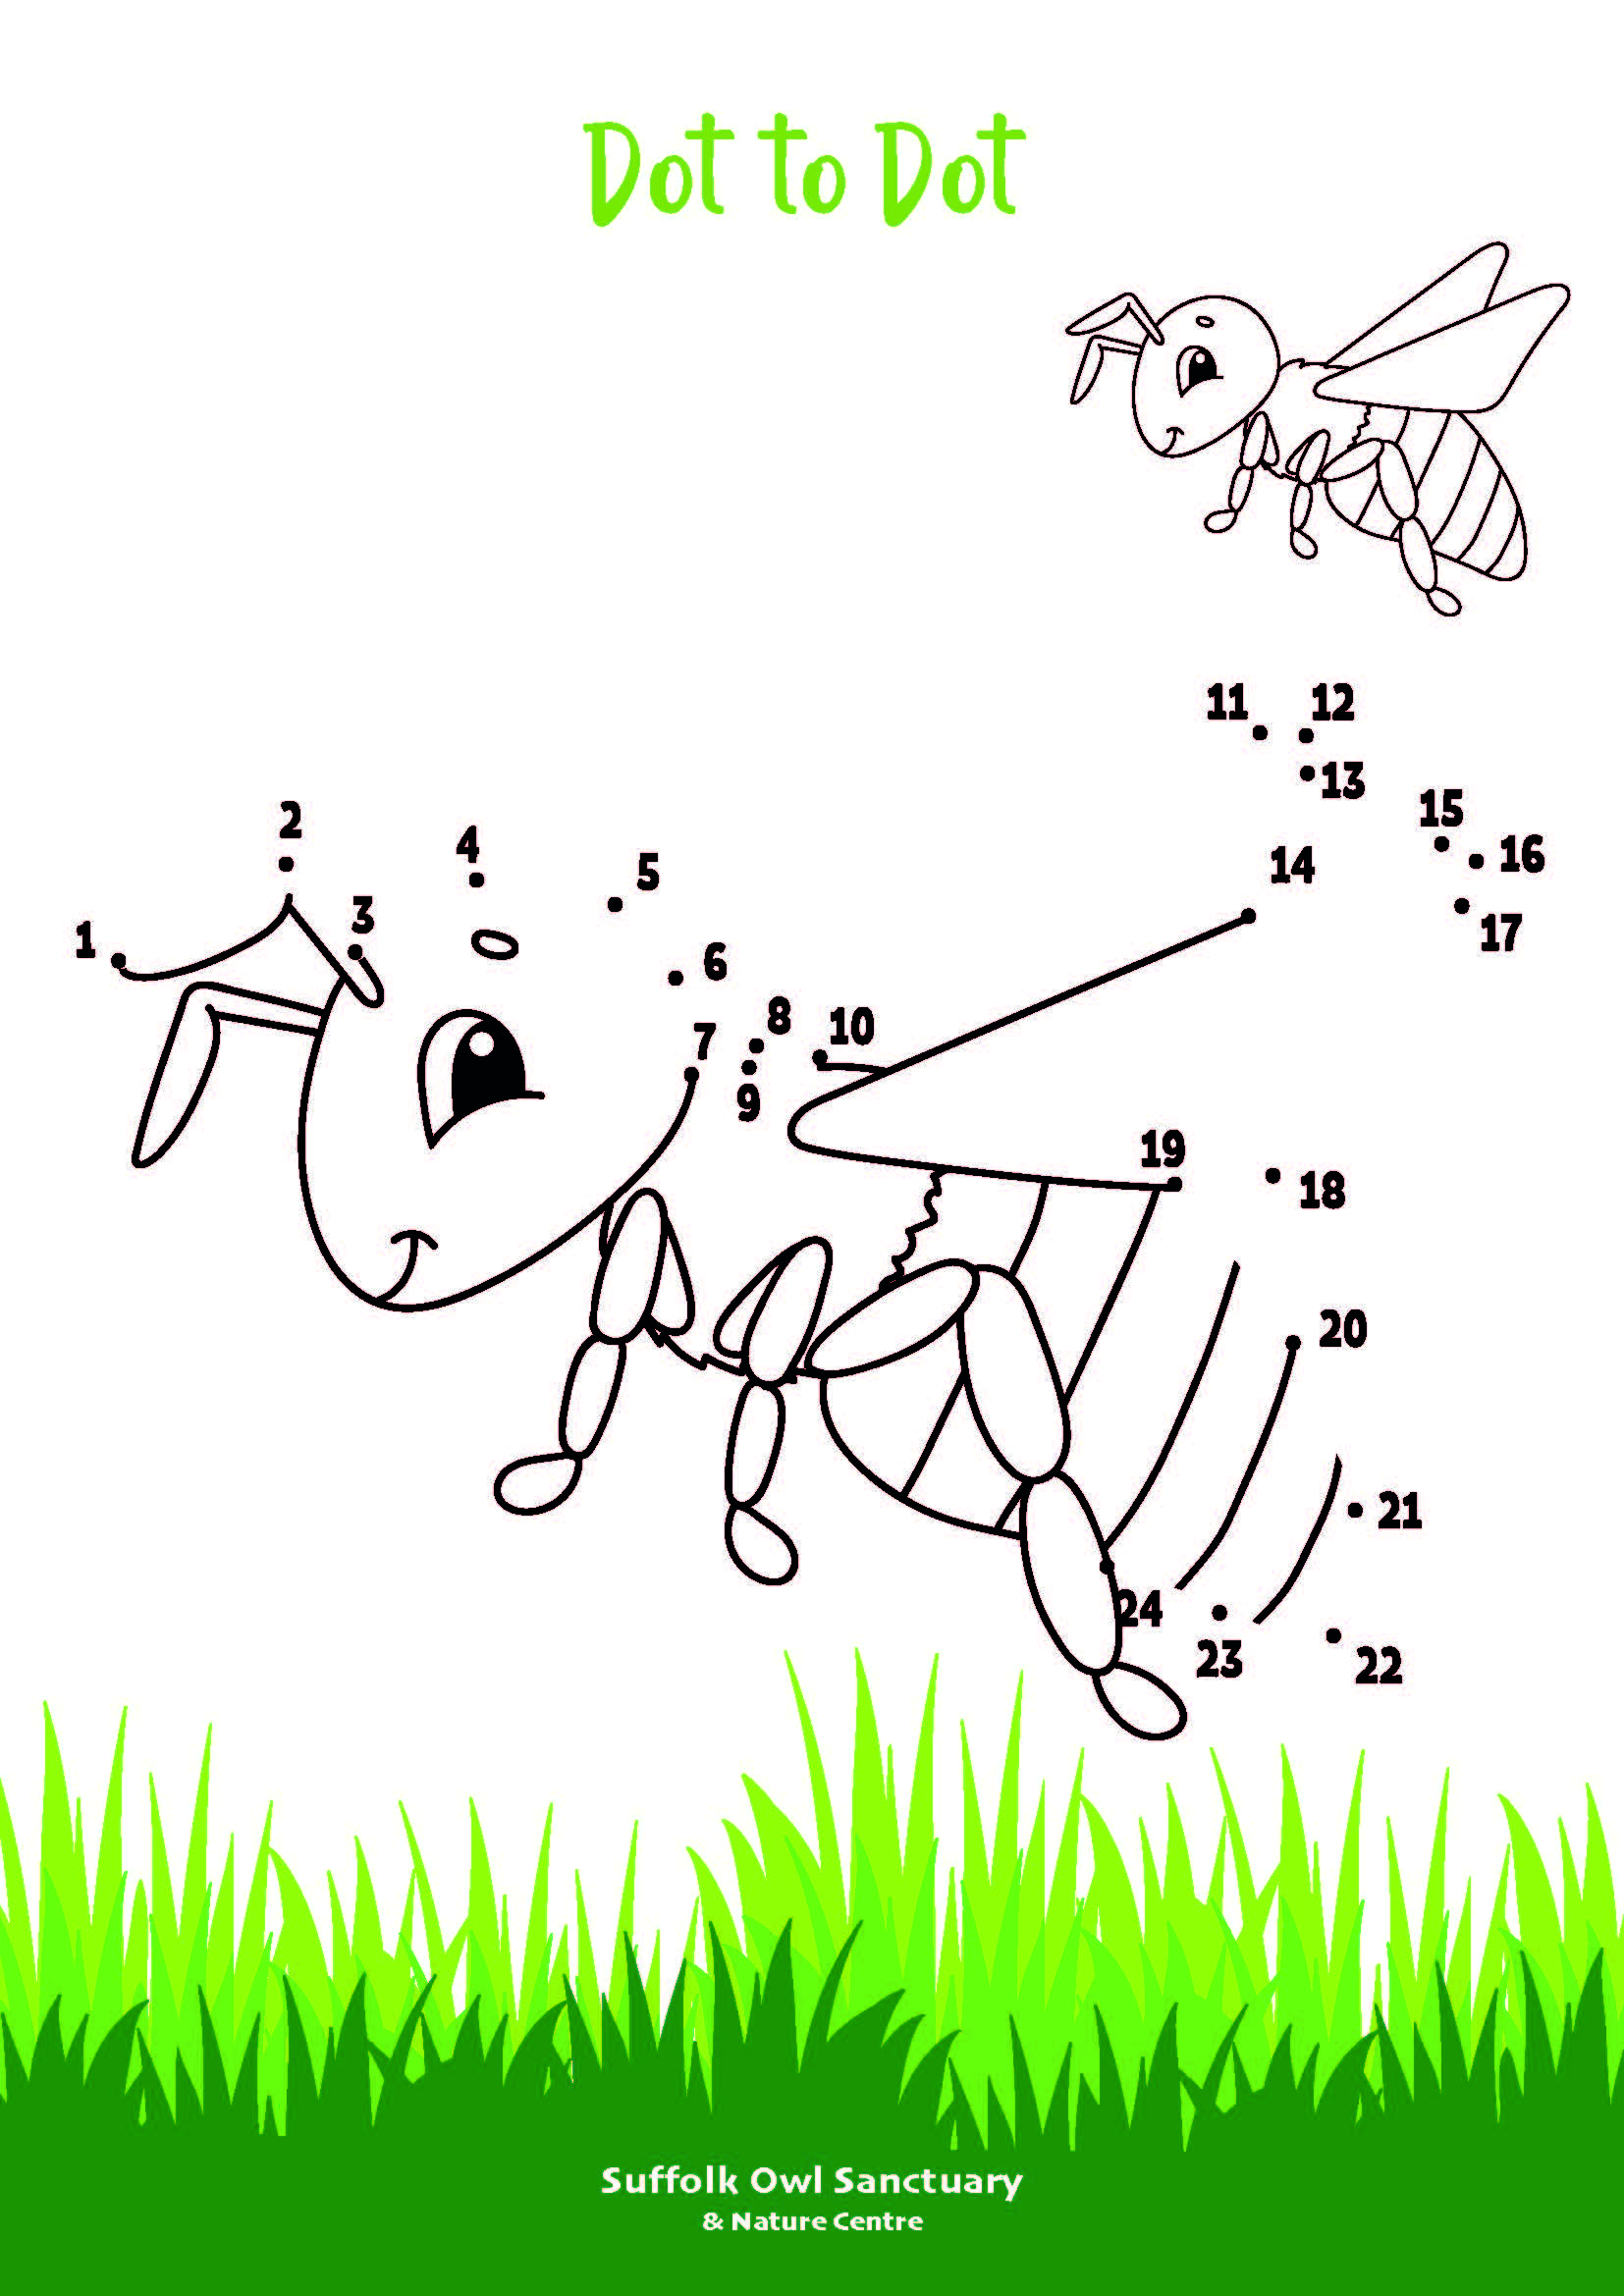 Bee Dot to Dot Activity Sheet  image